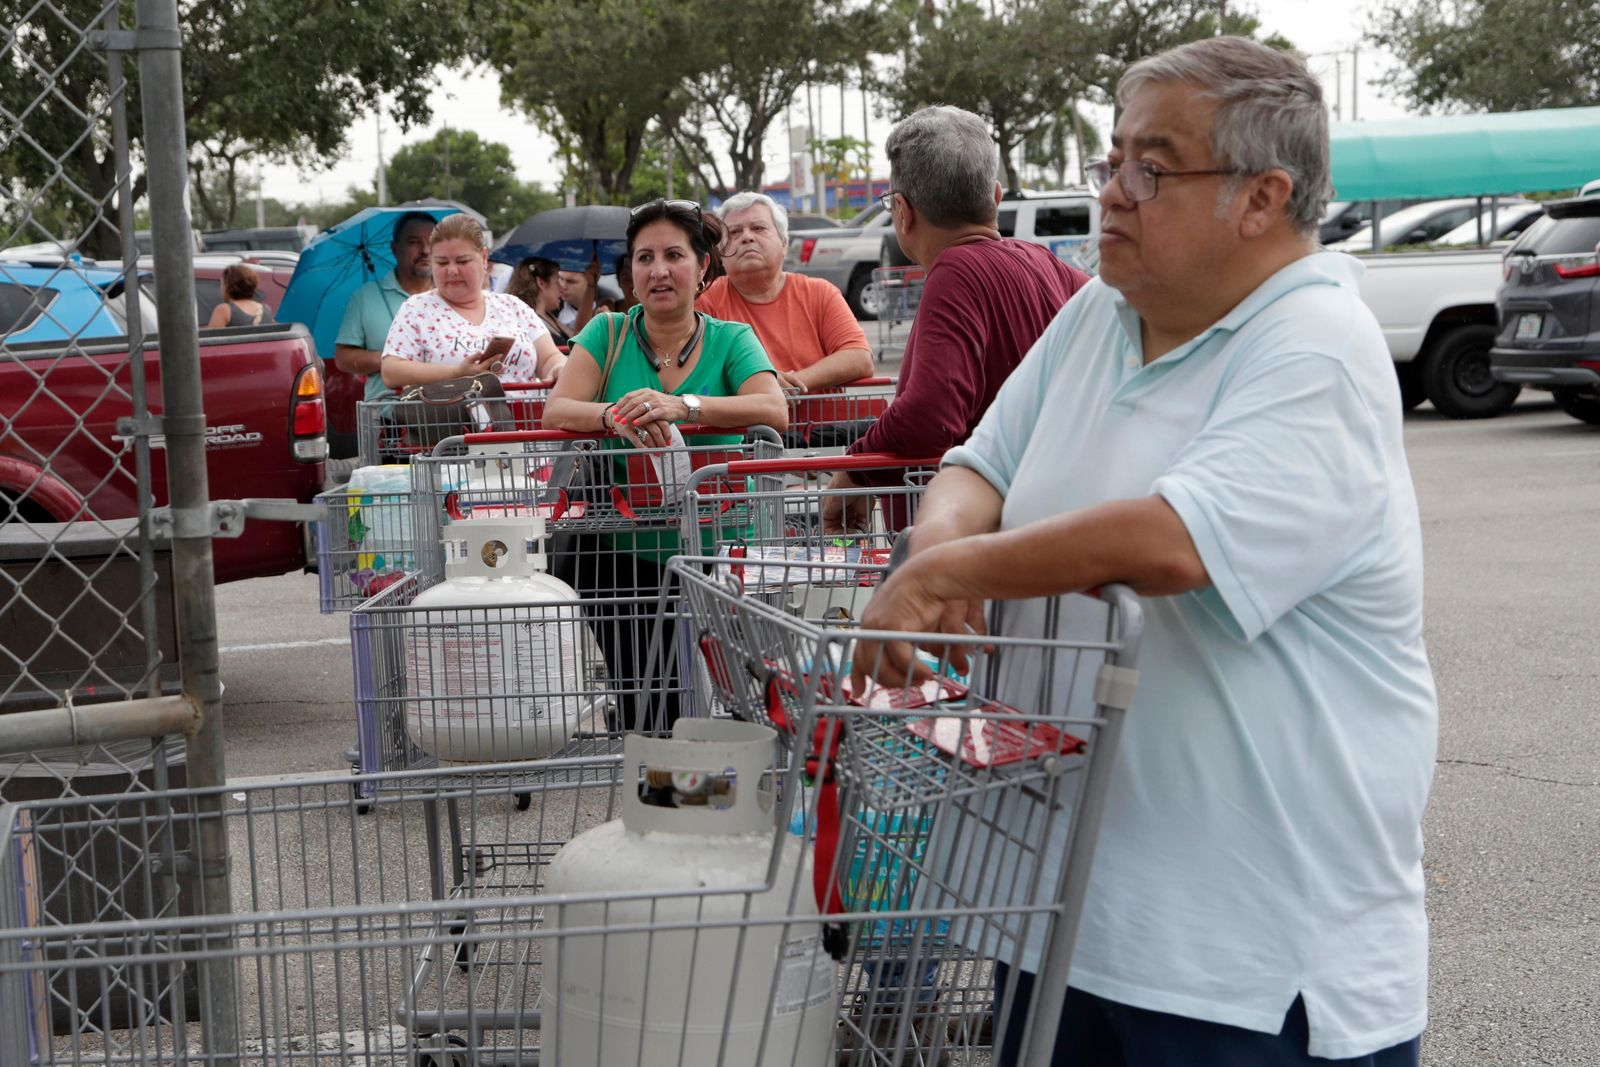 People stand in line for propane fuel at BJ's Wholesale Club in preparation for Hurricane Dorian, Thursday, Aug. 29, 2019, in Hialeah, Fla. Hurricane Dorian is heading towards Florida for a possible direct hit on the state over Labor Day. (AP Photo/Lynne Sladky)